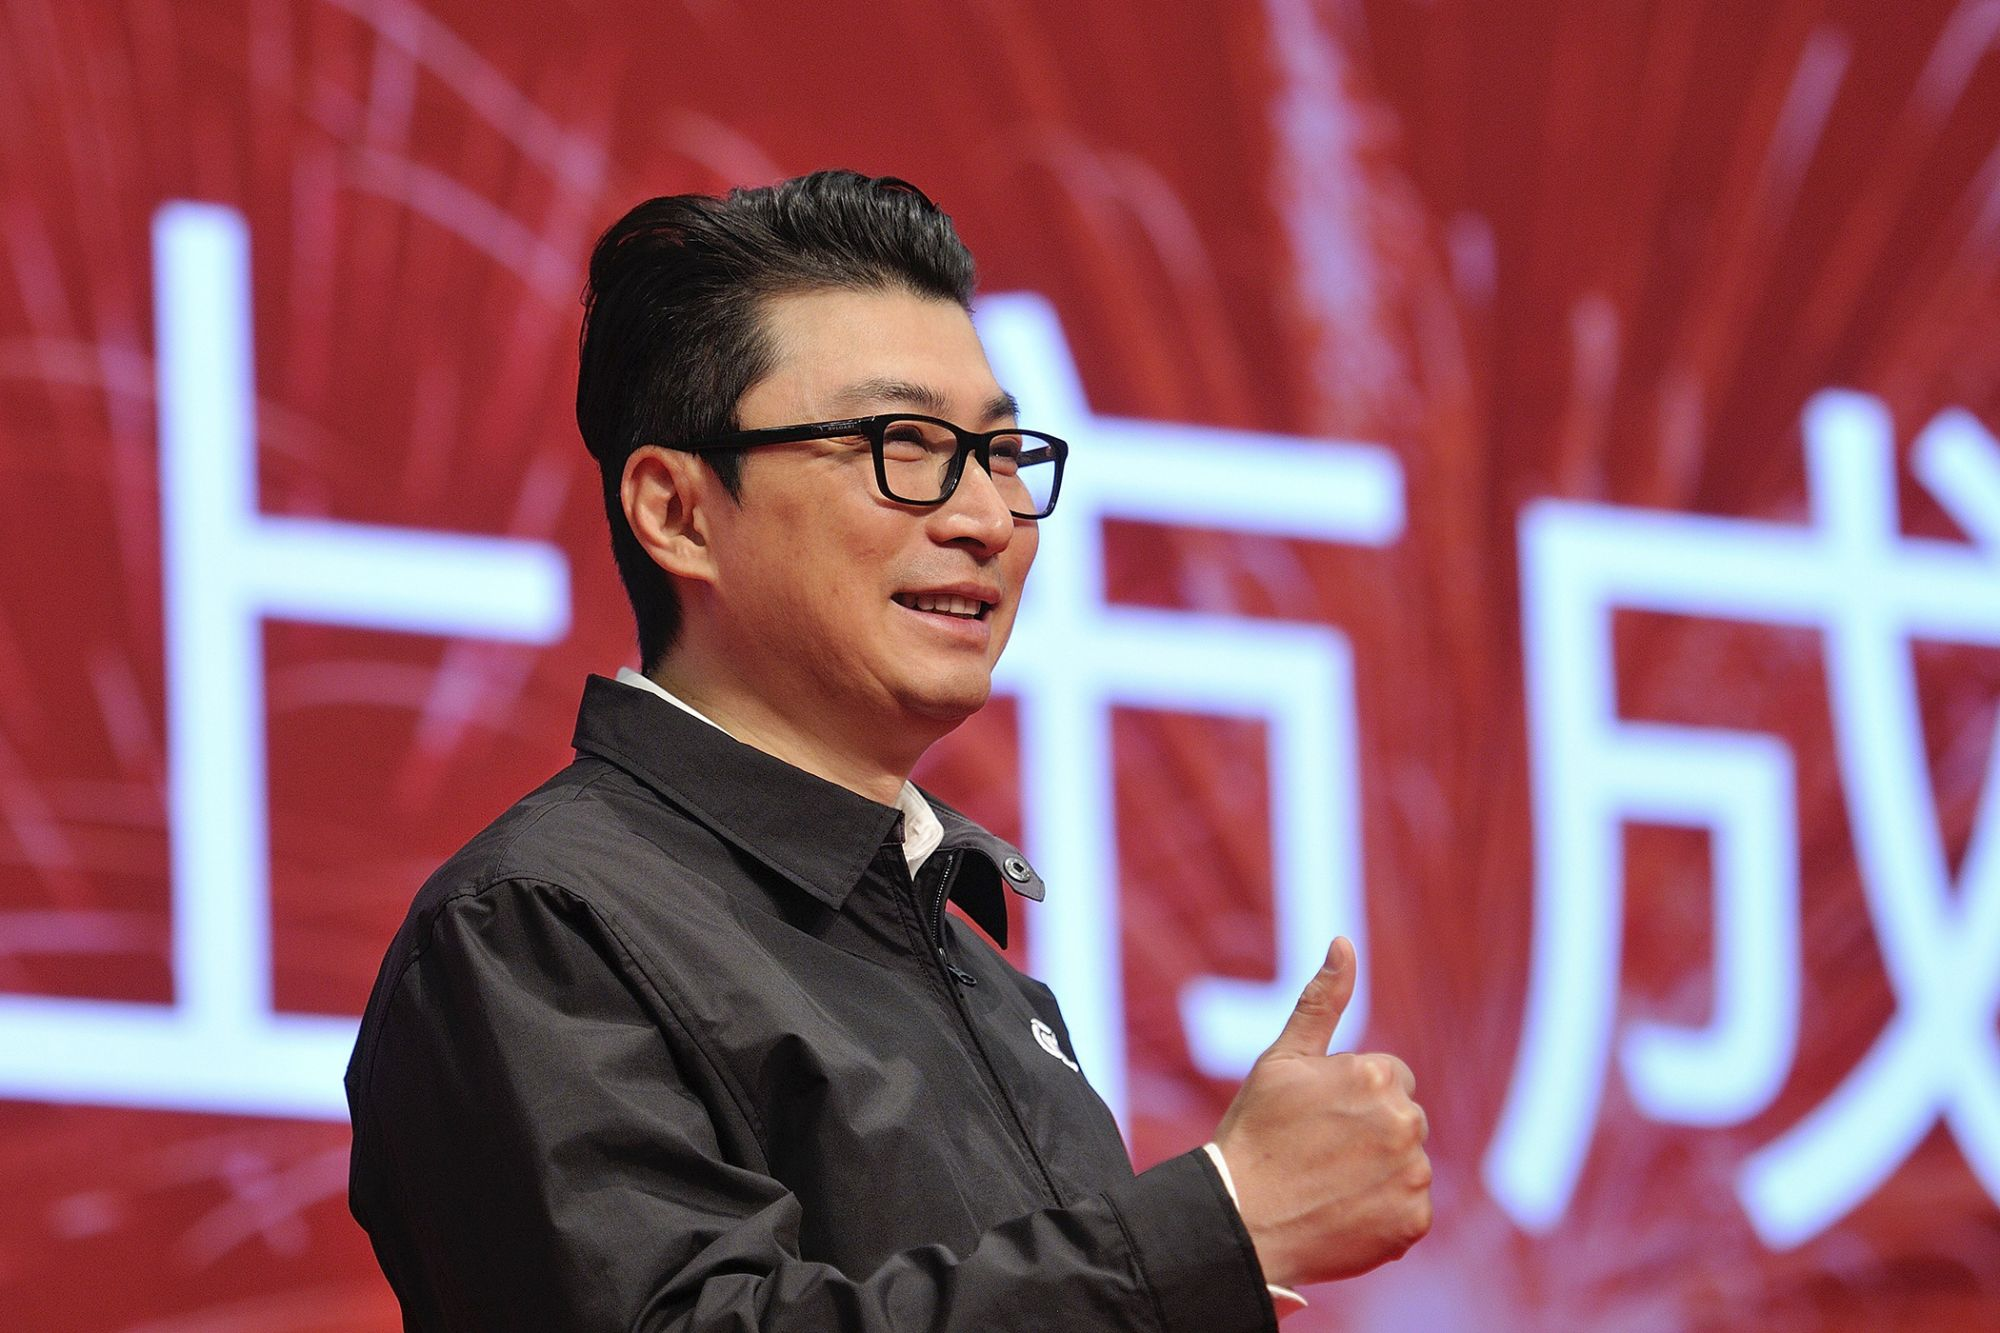 Most Of China's Richest People Are Self-Made Entrepreneurs—Here's How They Made Their Fortunes